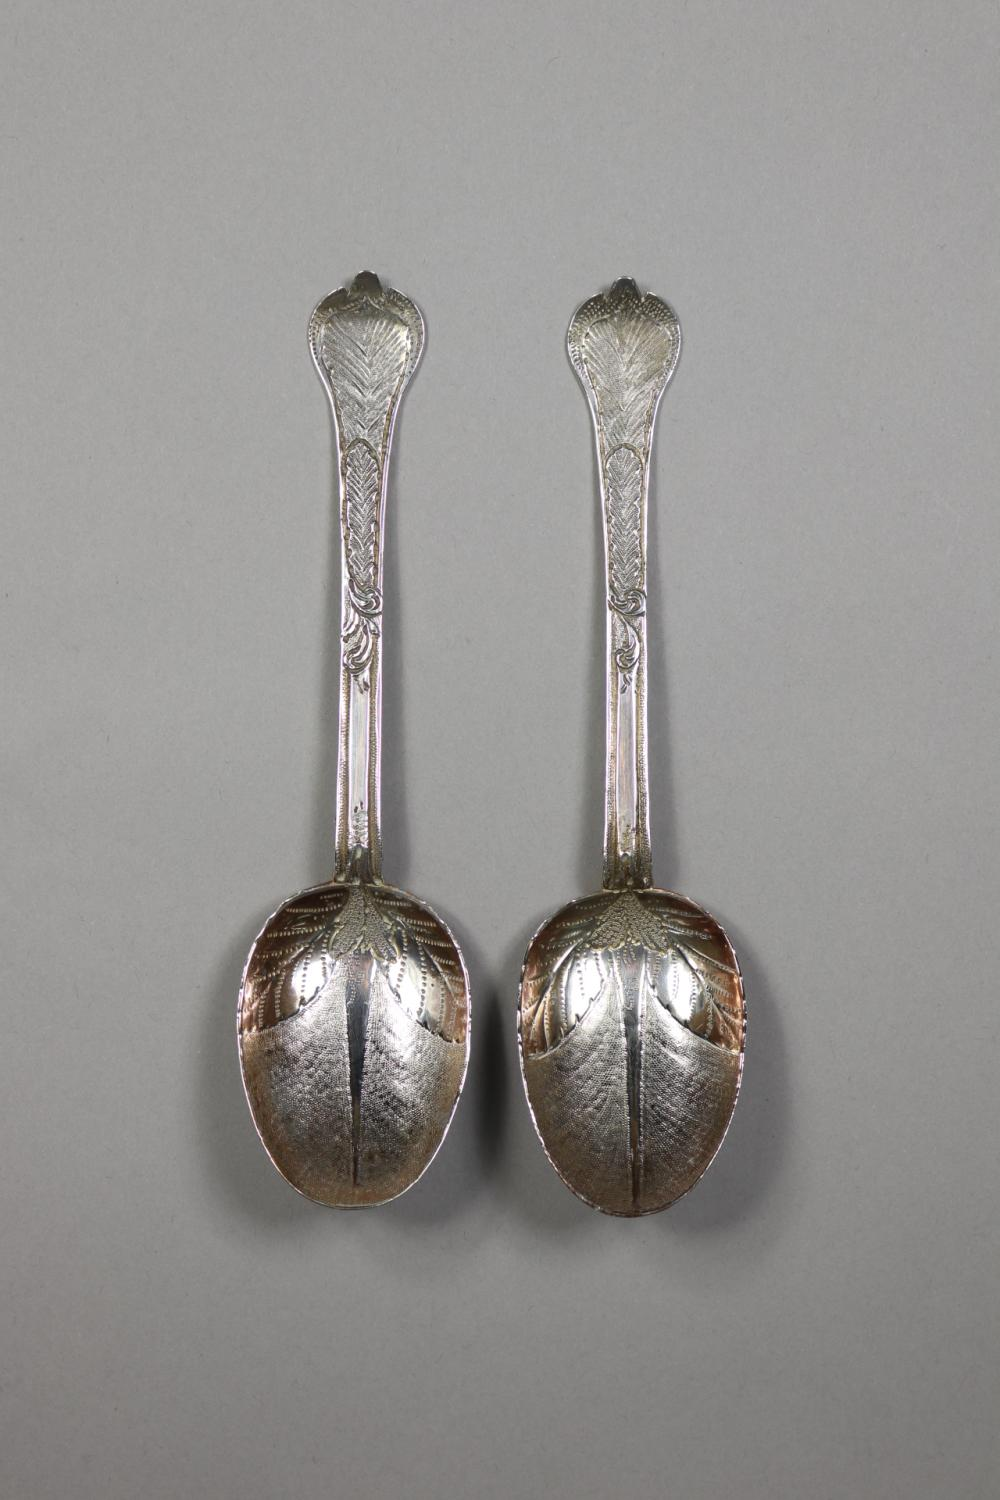 Pair of antique Charles II hallmark sterling silver Trefid Spoons, with later decoration, London 1677, John Smith, approx 105 grams